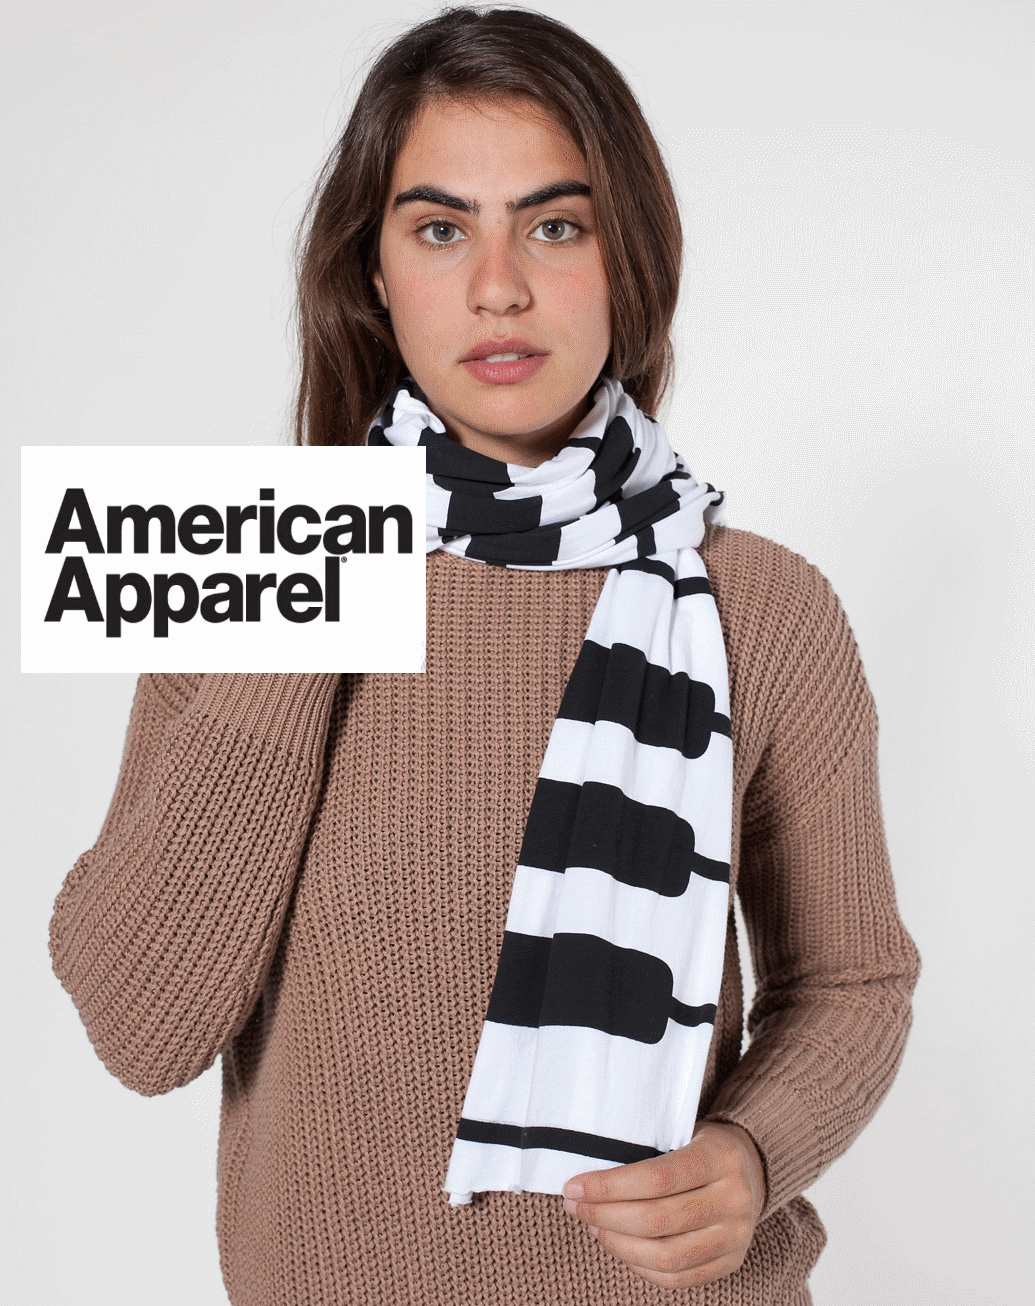 ECHARPE PIANO AMERICAN APPAREL2